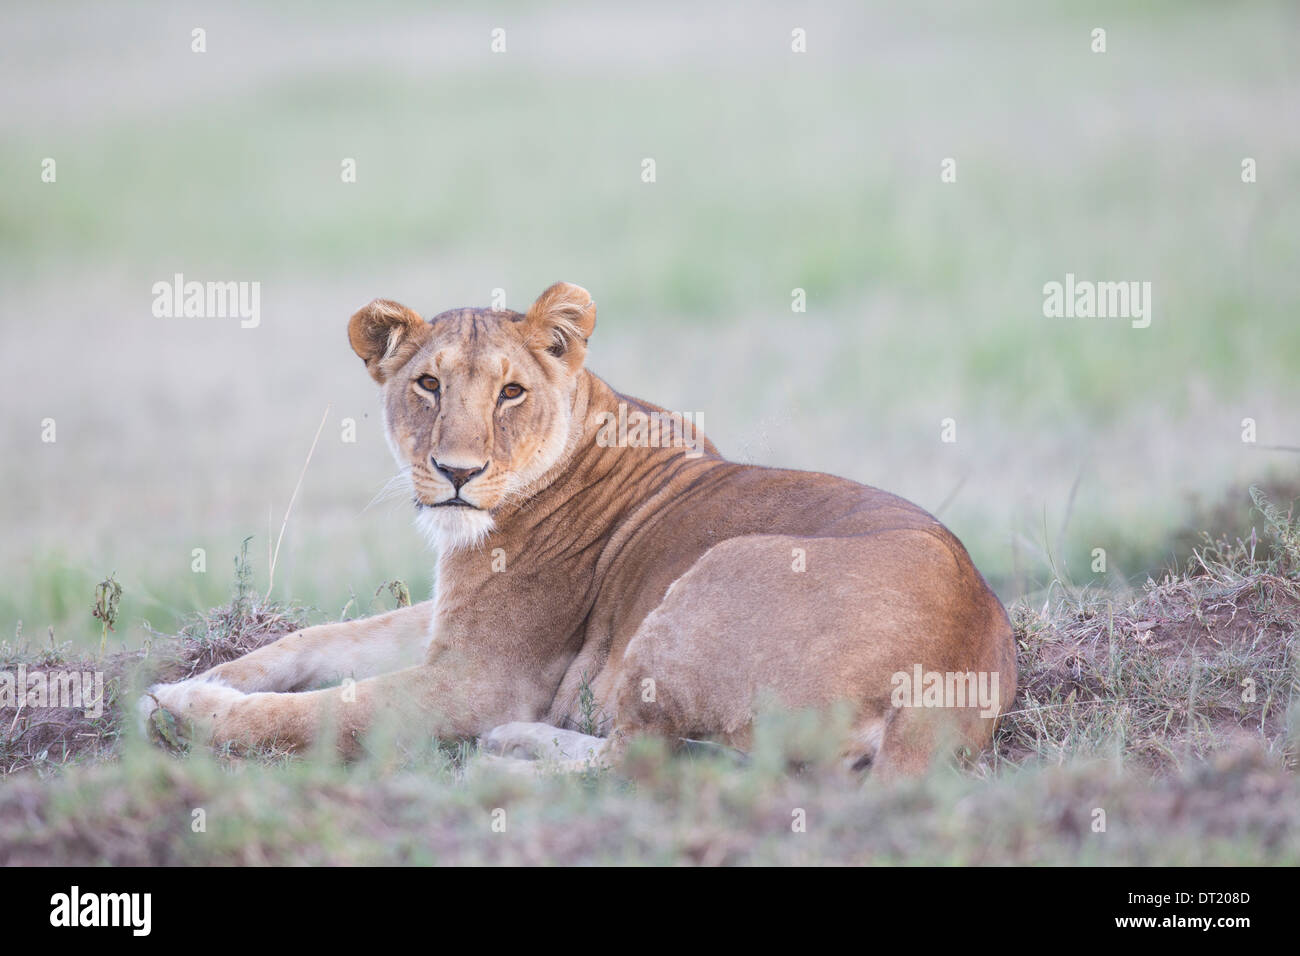 Lioness part of the famous Marsh lion pride of the Maasai Mara Kenya  (Panthera leo) - Stock Image